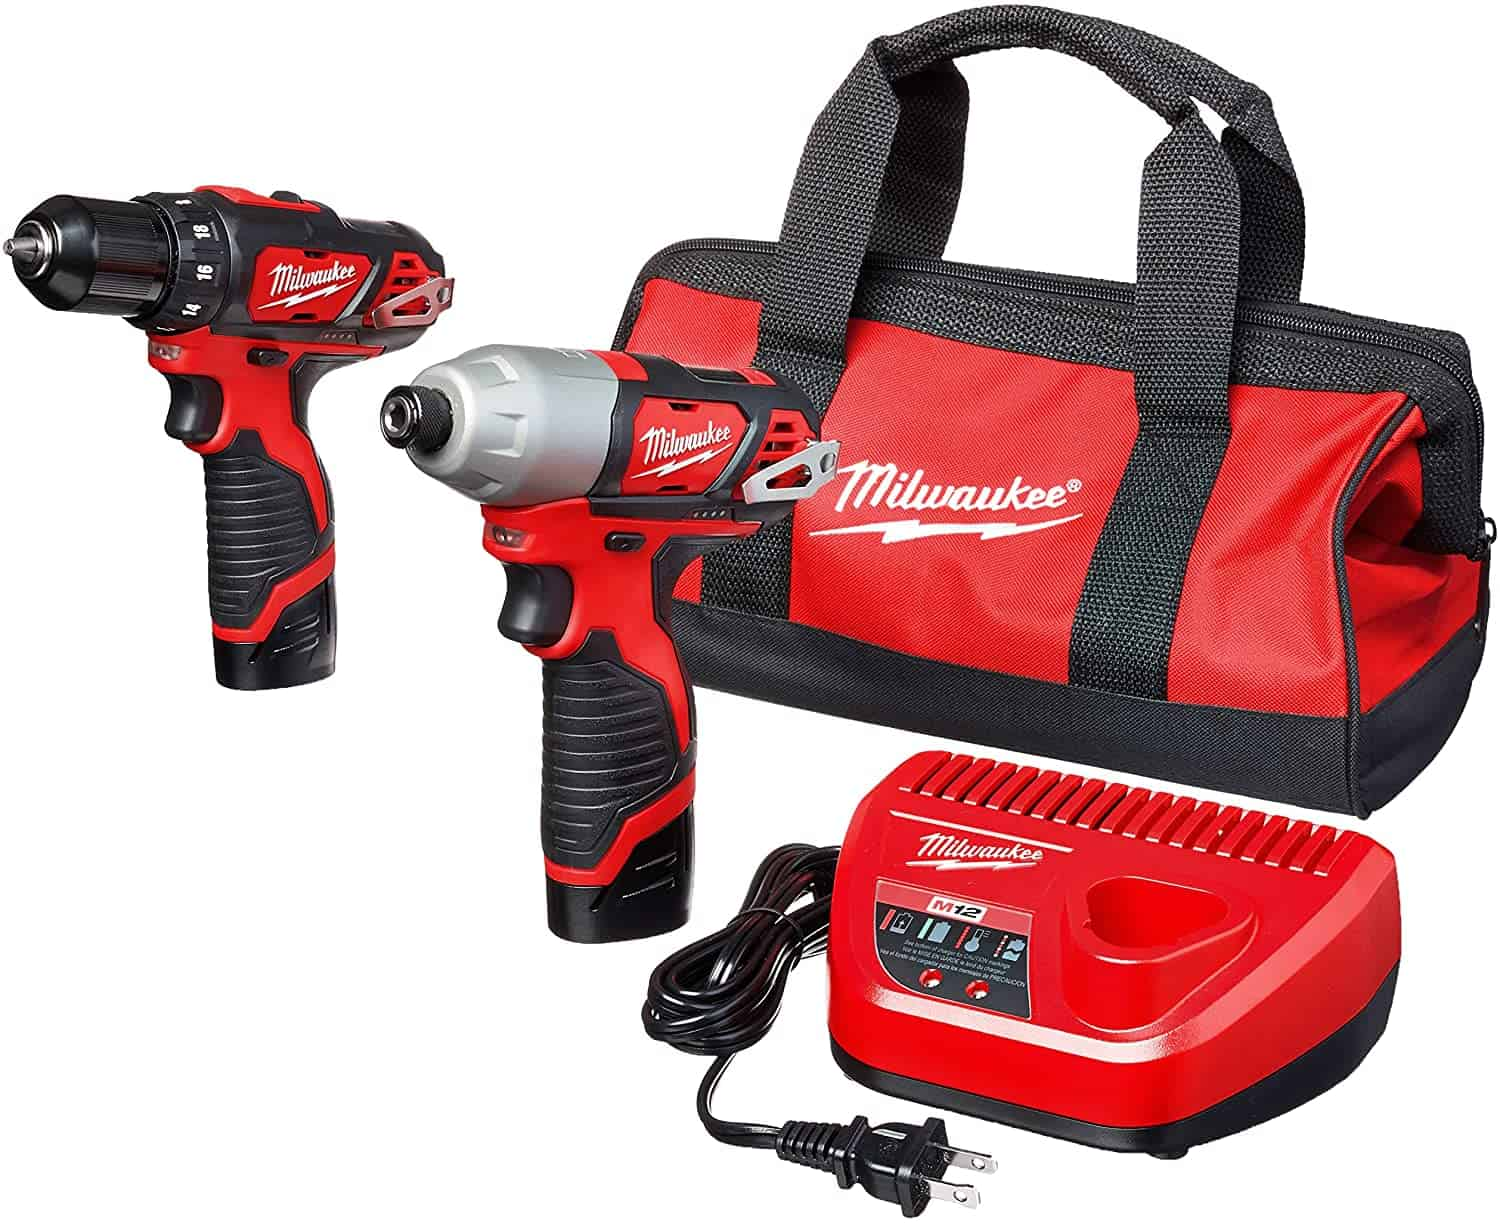 Best impact driver + drill combination package- MILWAUKEE'S 2494-22 M12 Cordless Combination